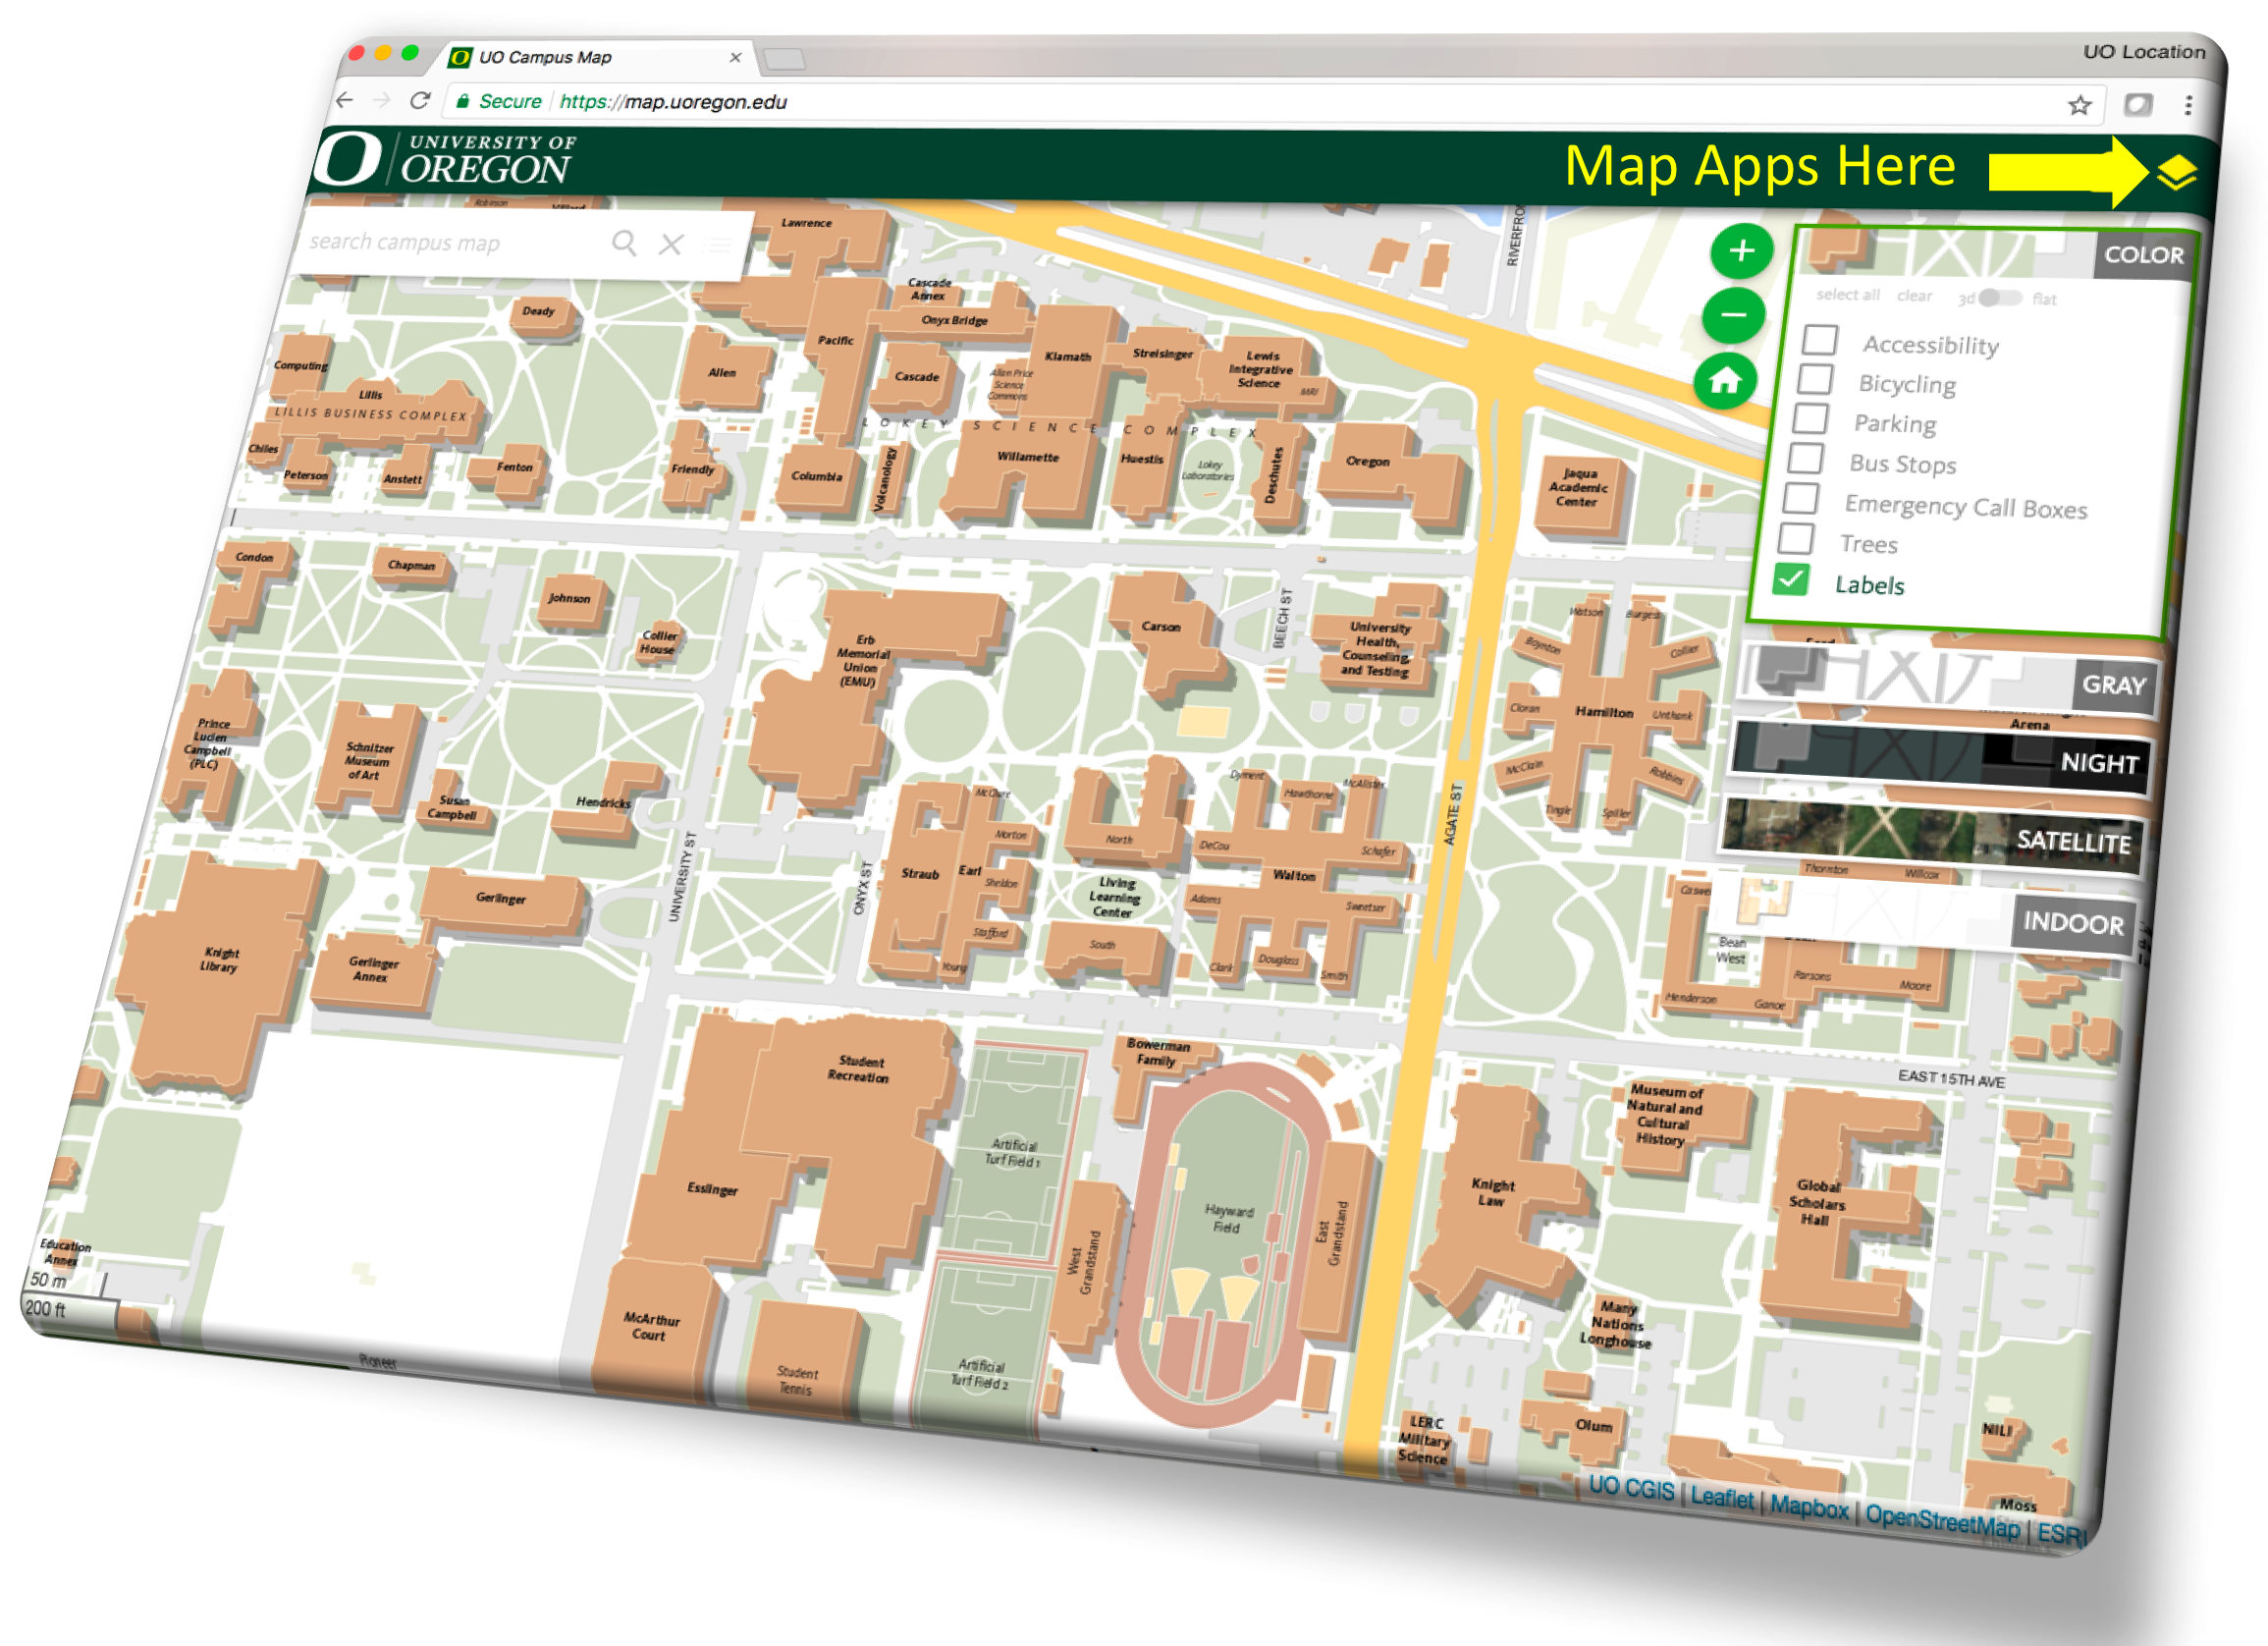 campus map university of oregon The Campus Map Safety And Risk Services campus map university of oregon